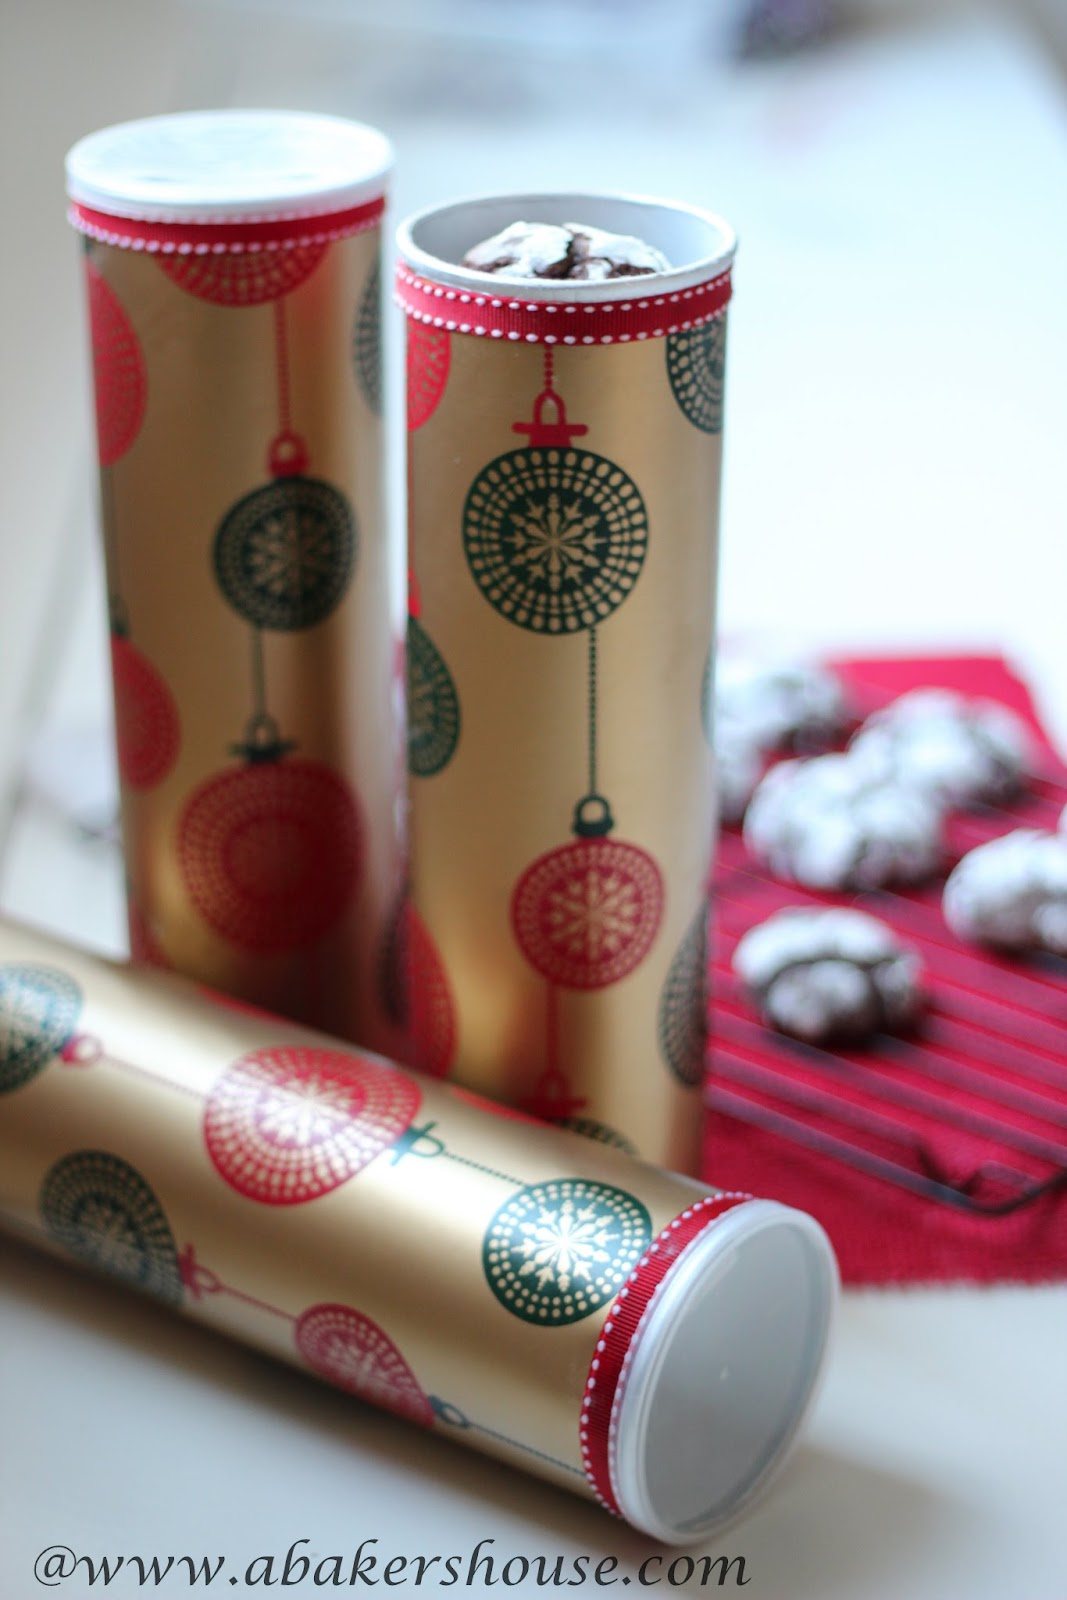 Decorated Pringles cans make great packaging for cookies